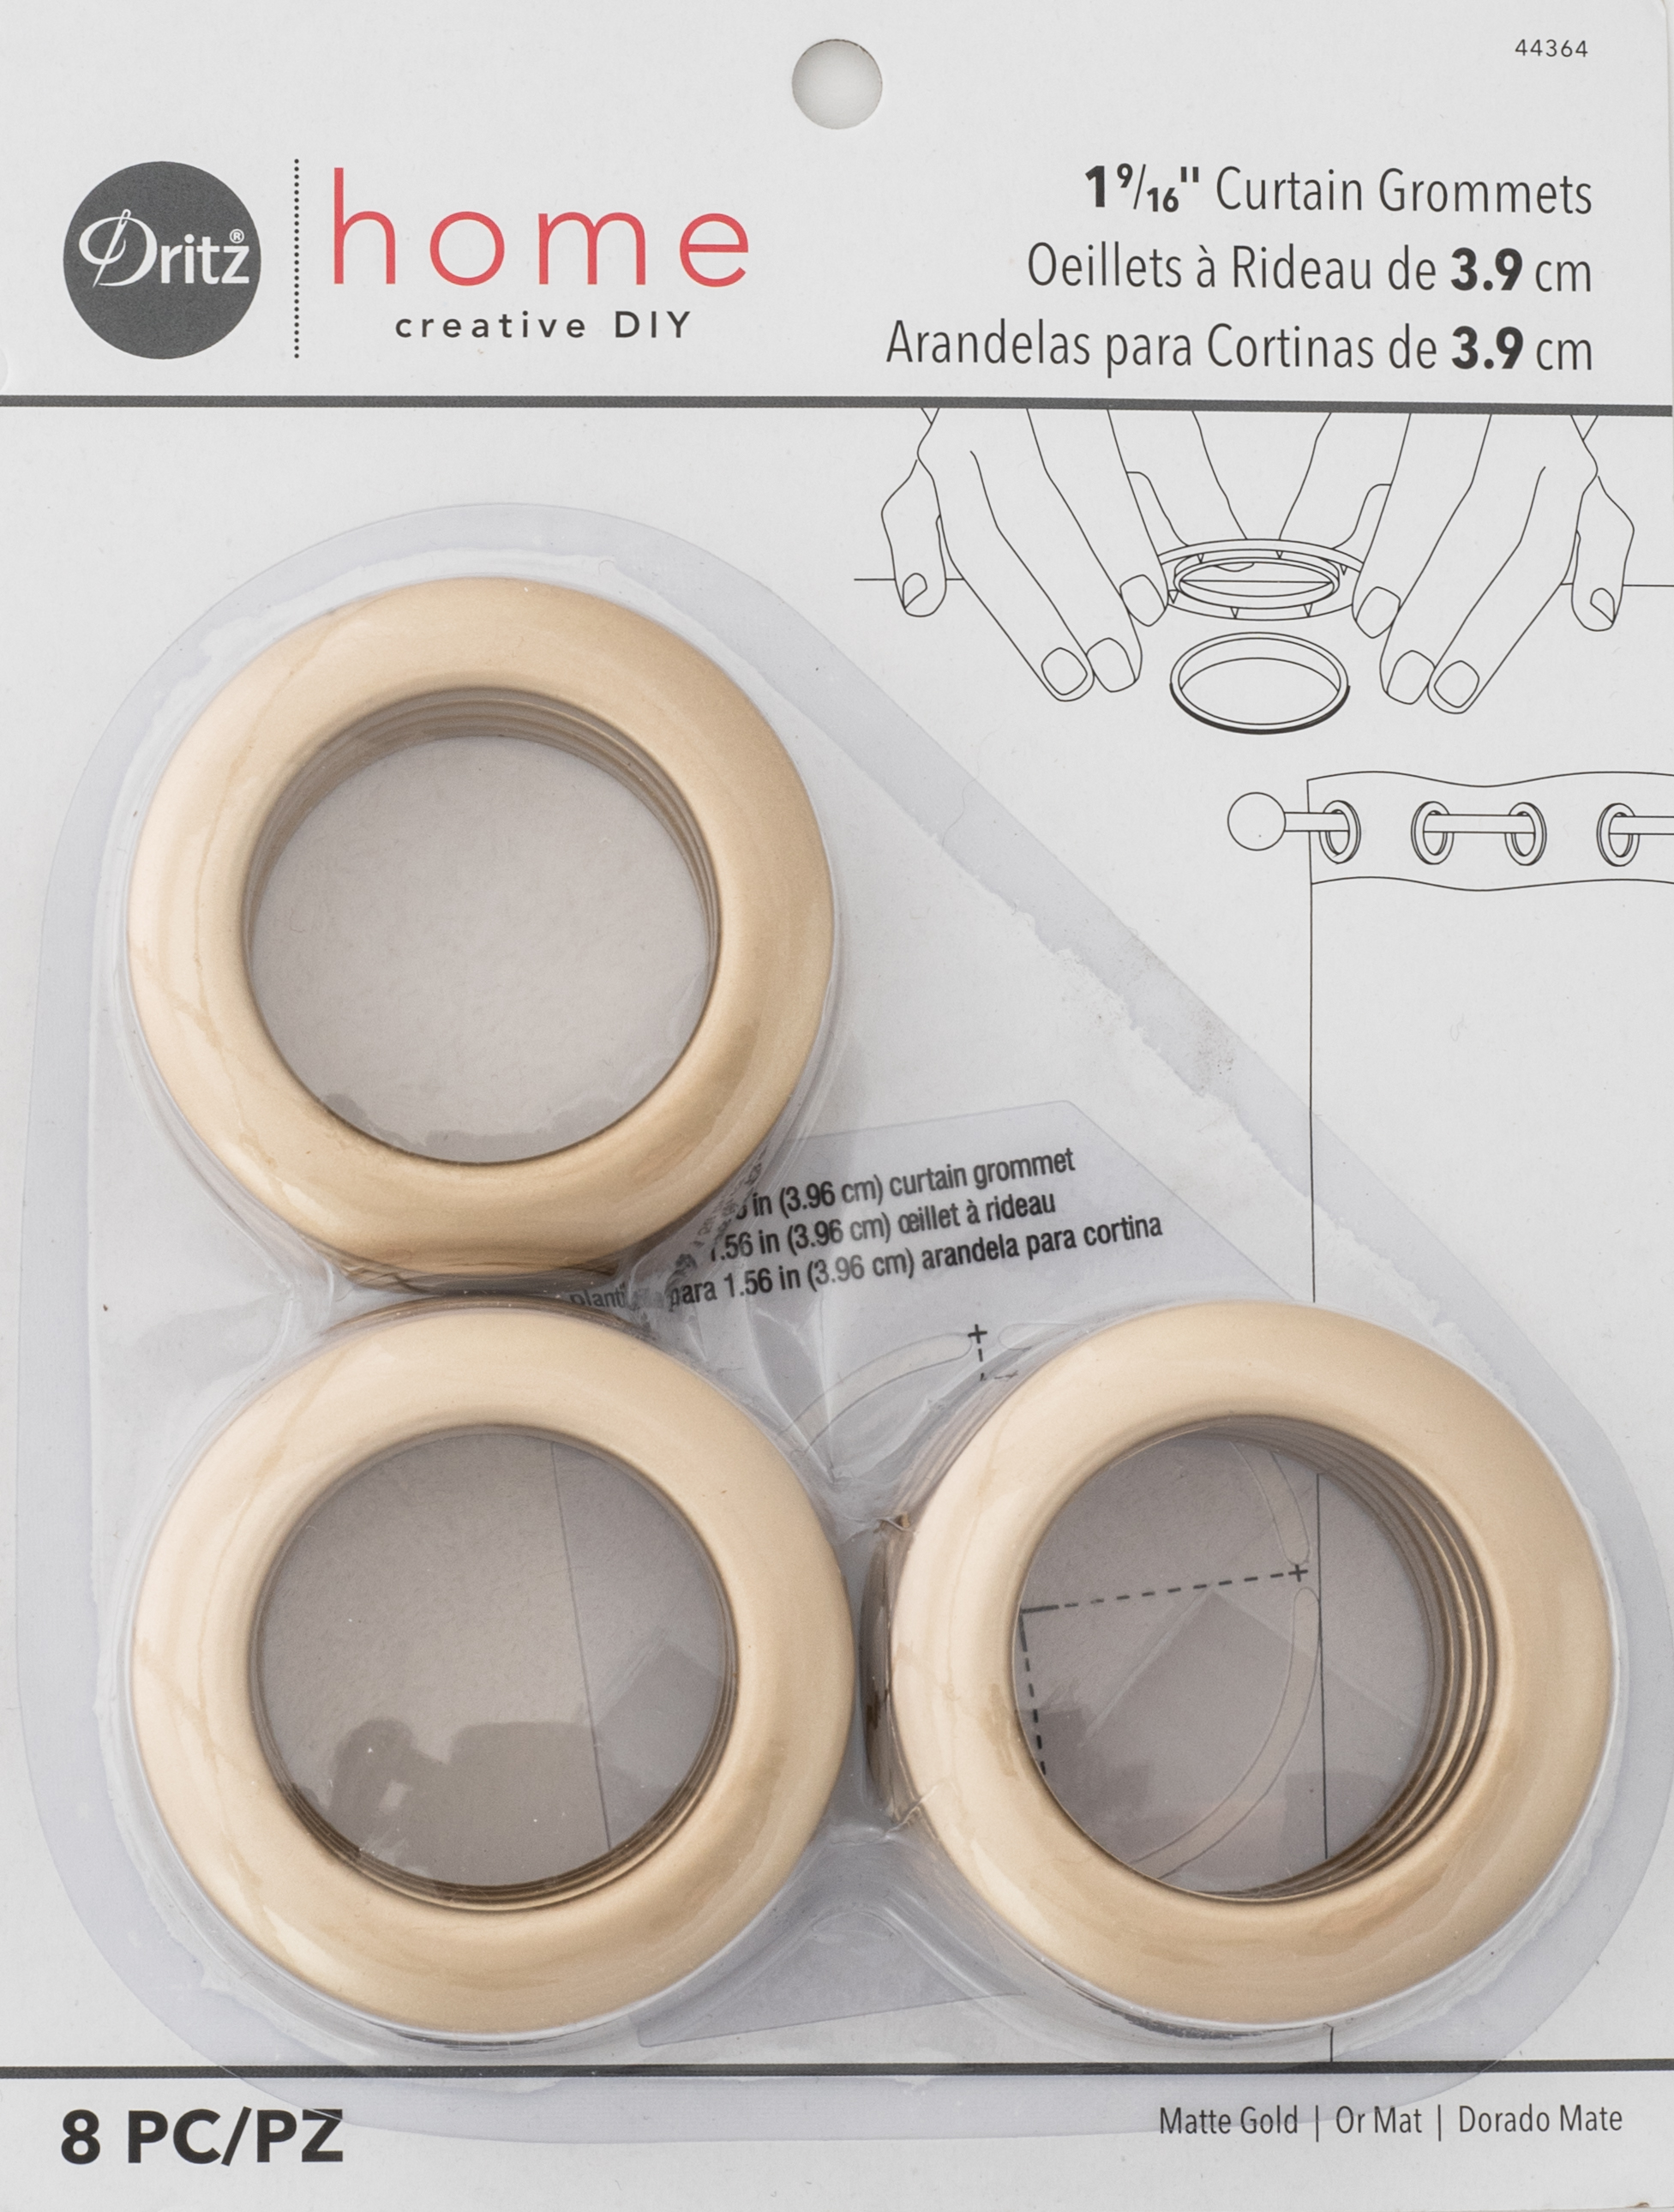 Curtain Grommets Matte Gold 1-9/16